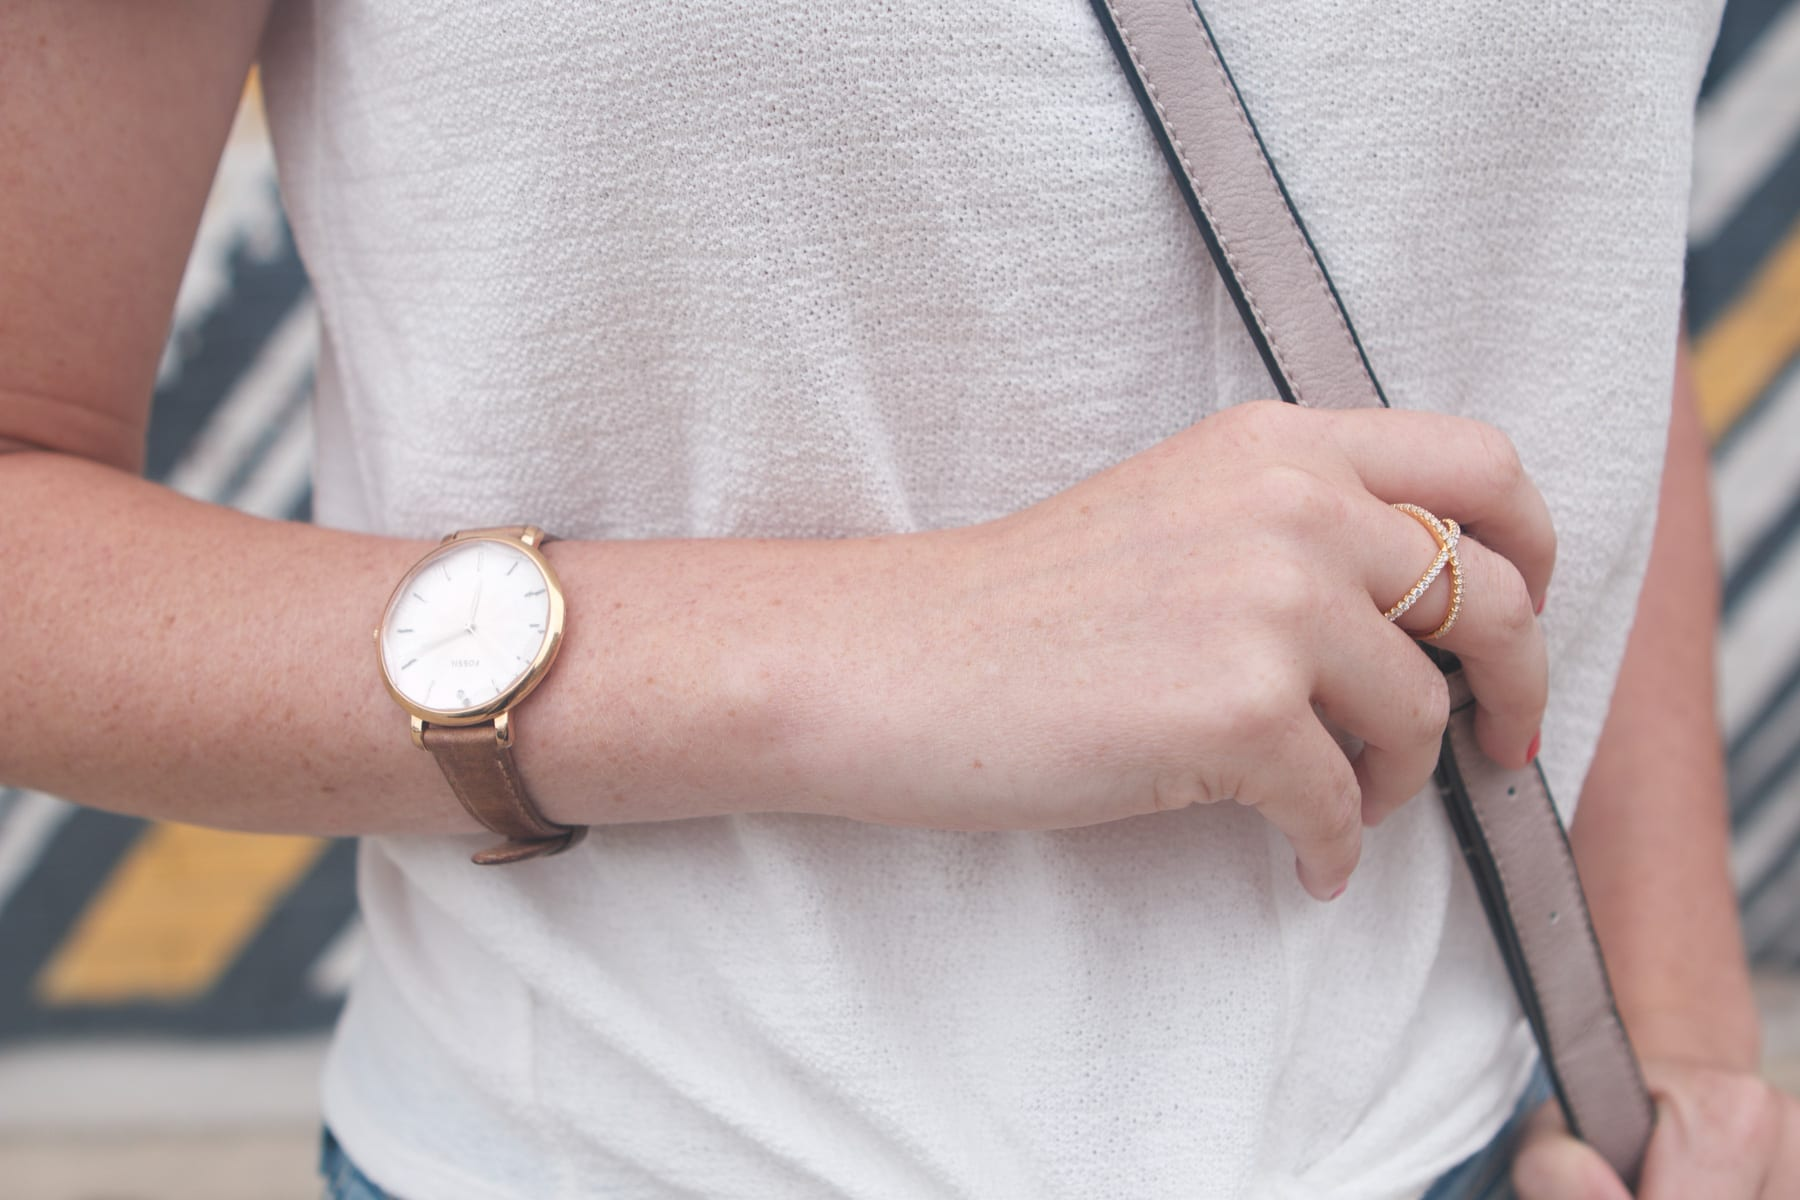 A neutral watch is a must have as well- timeless and elegant.